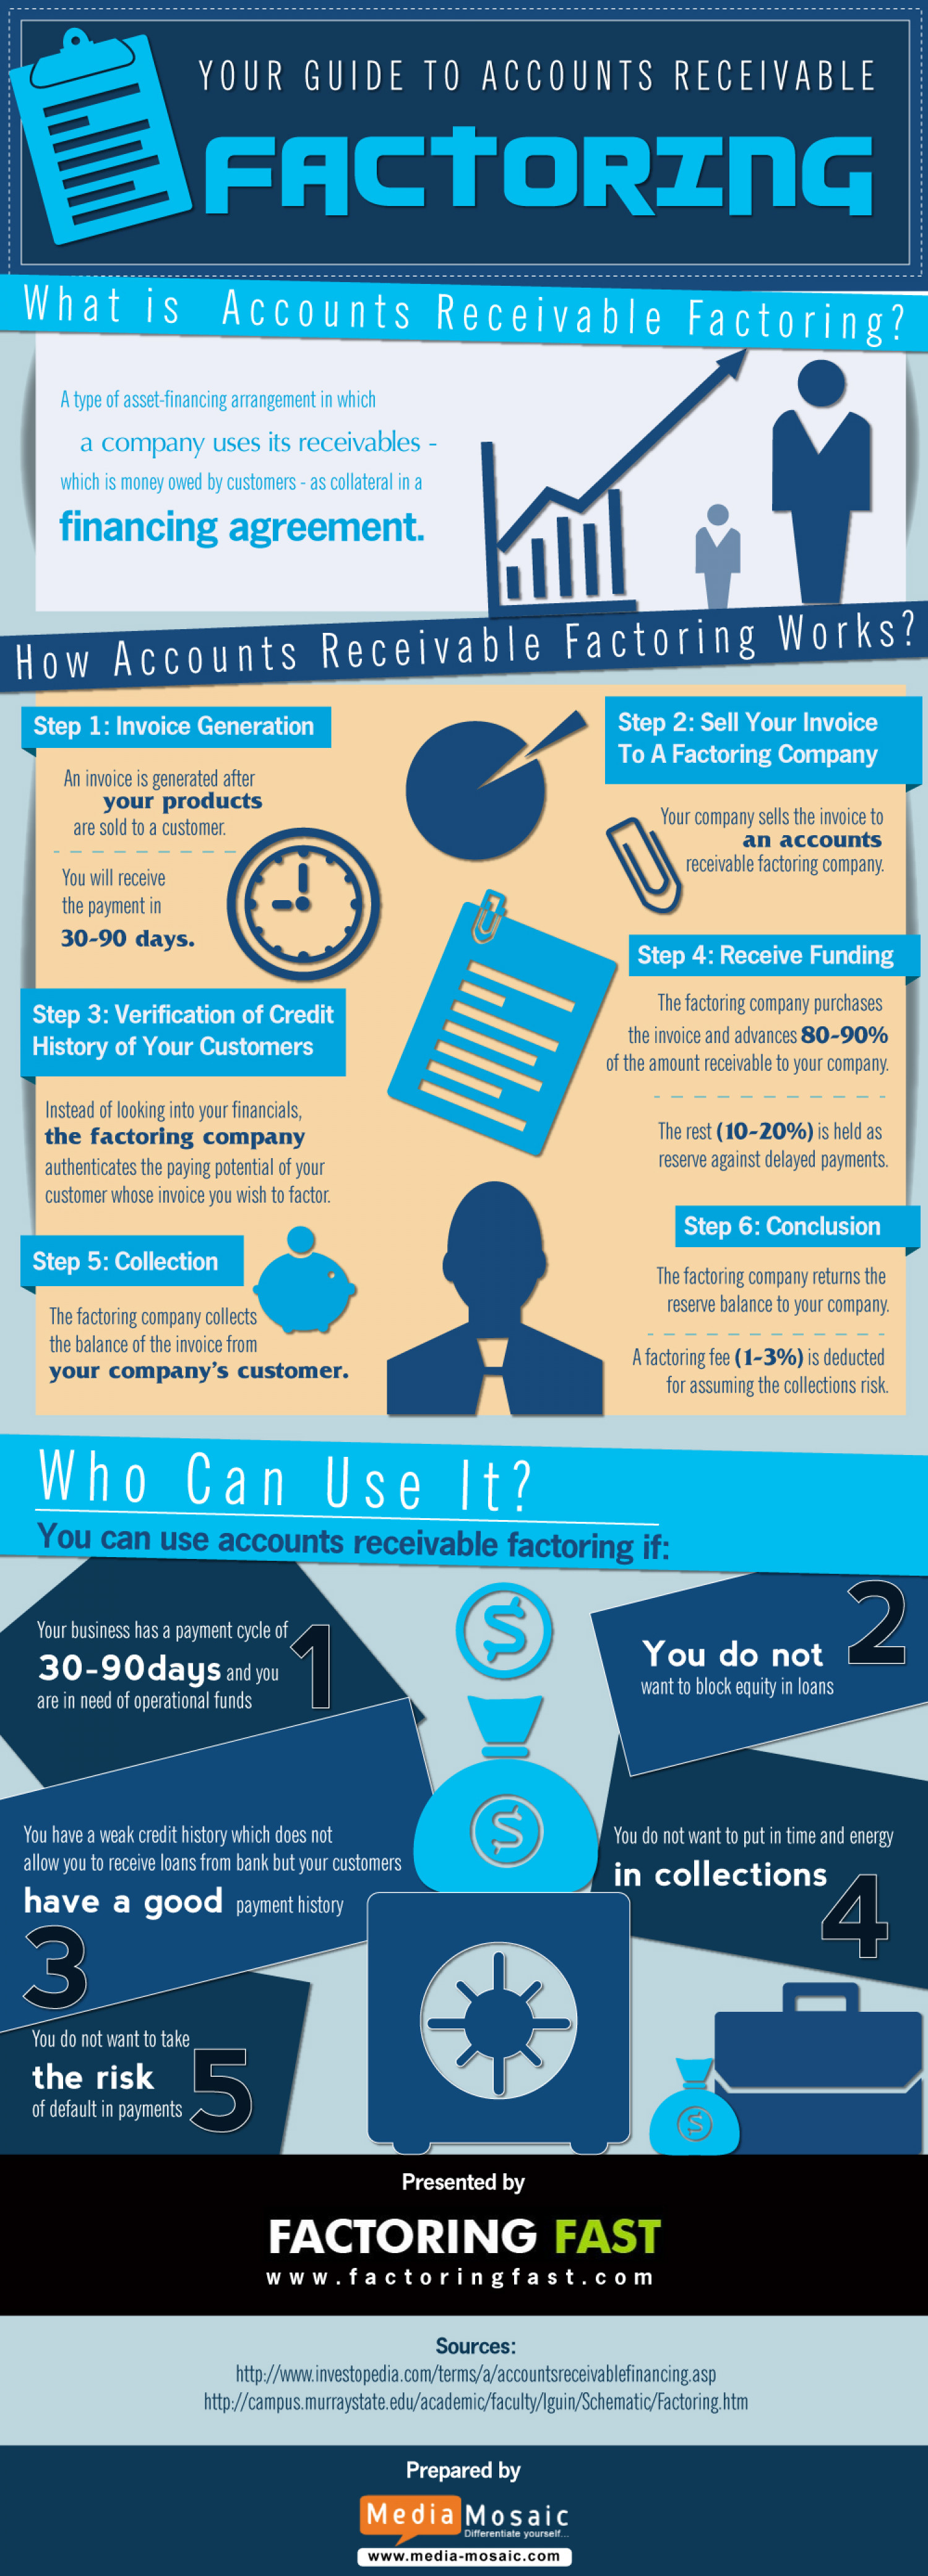 Your Guide To Accounts Receivable Factoring Infographic